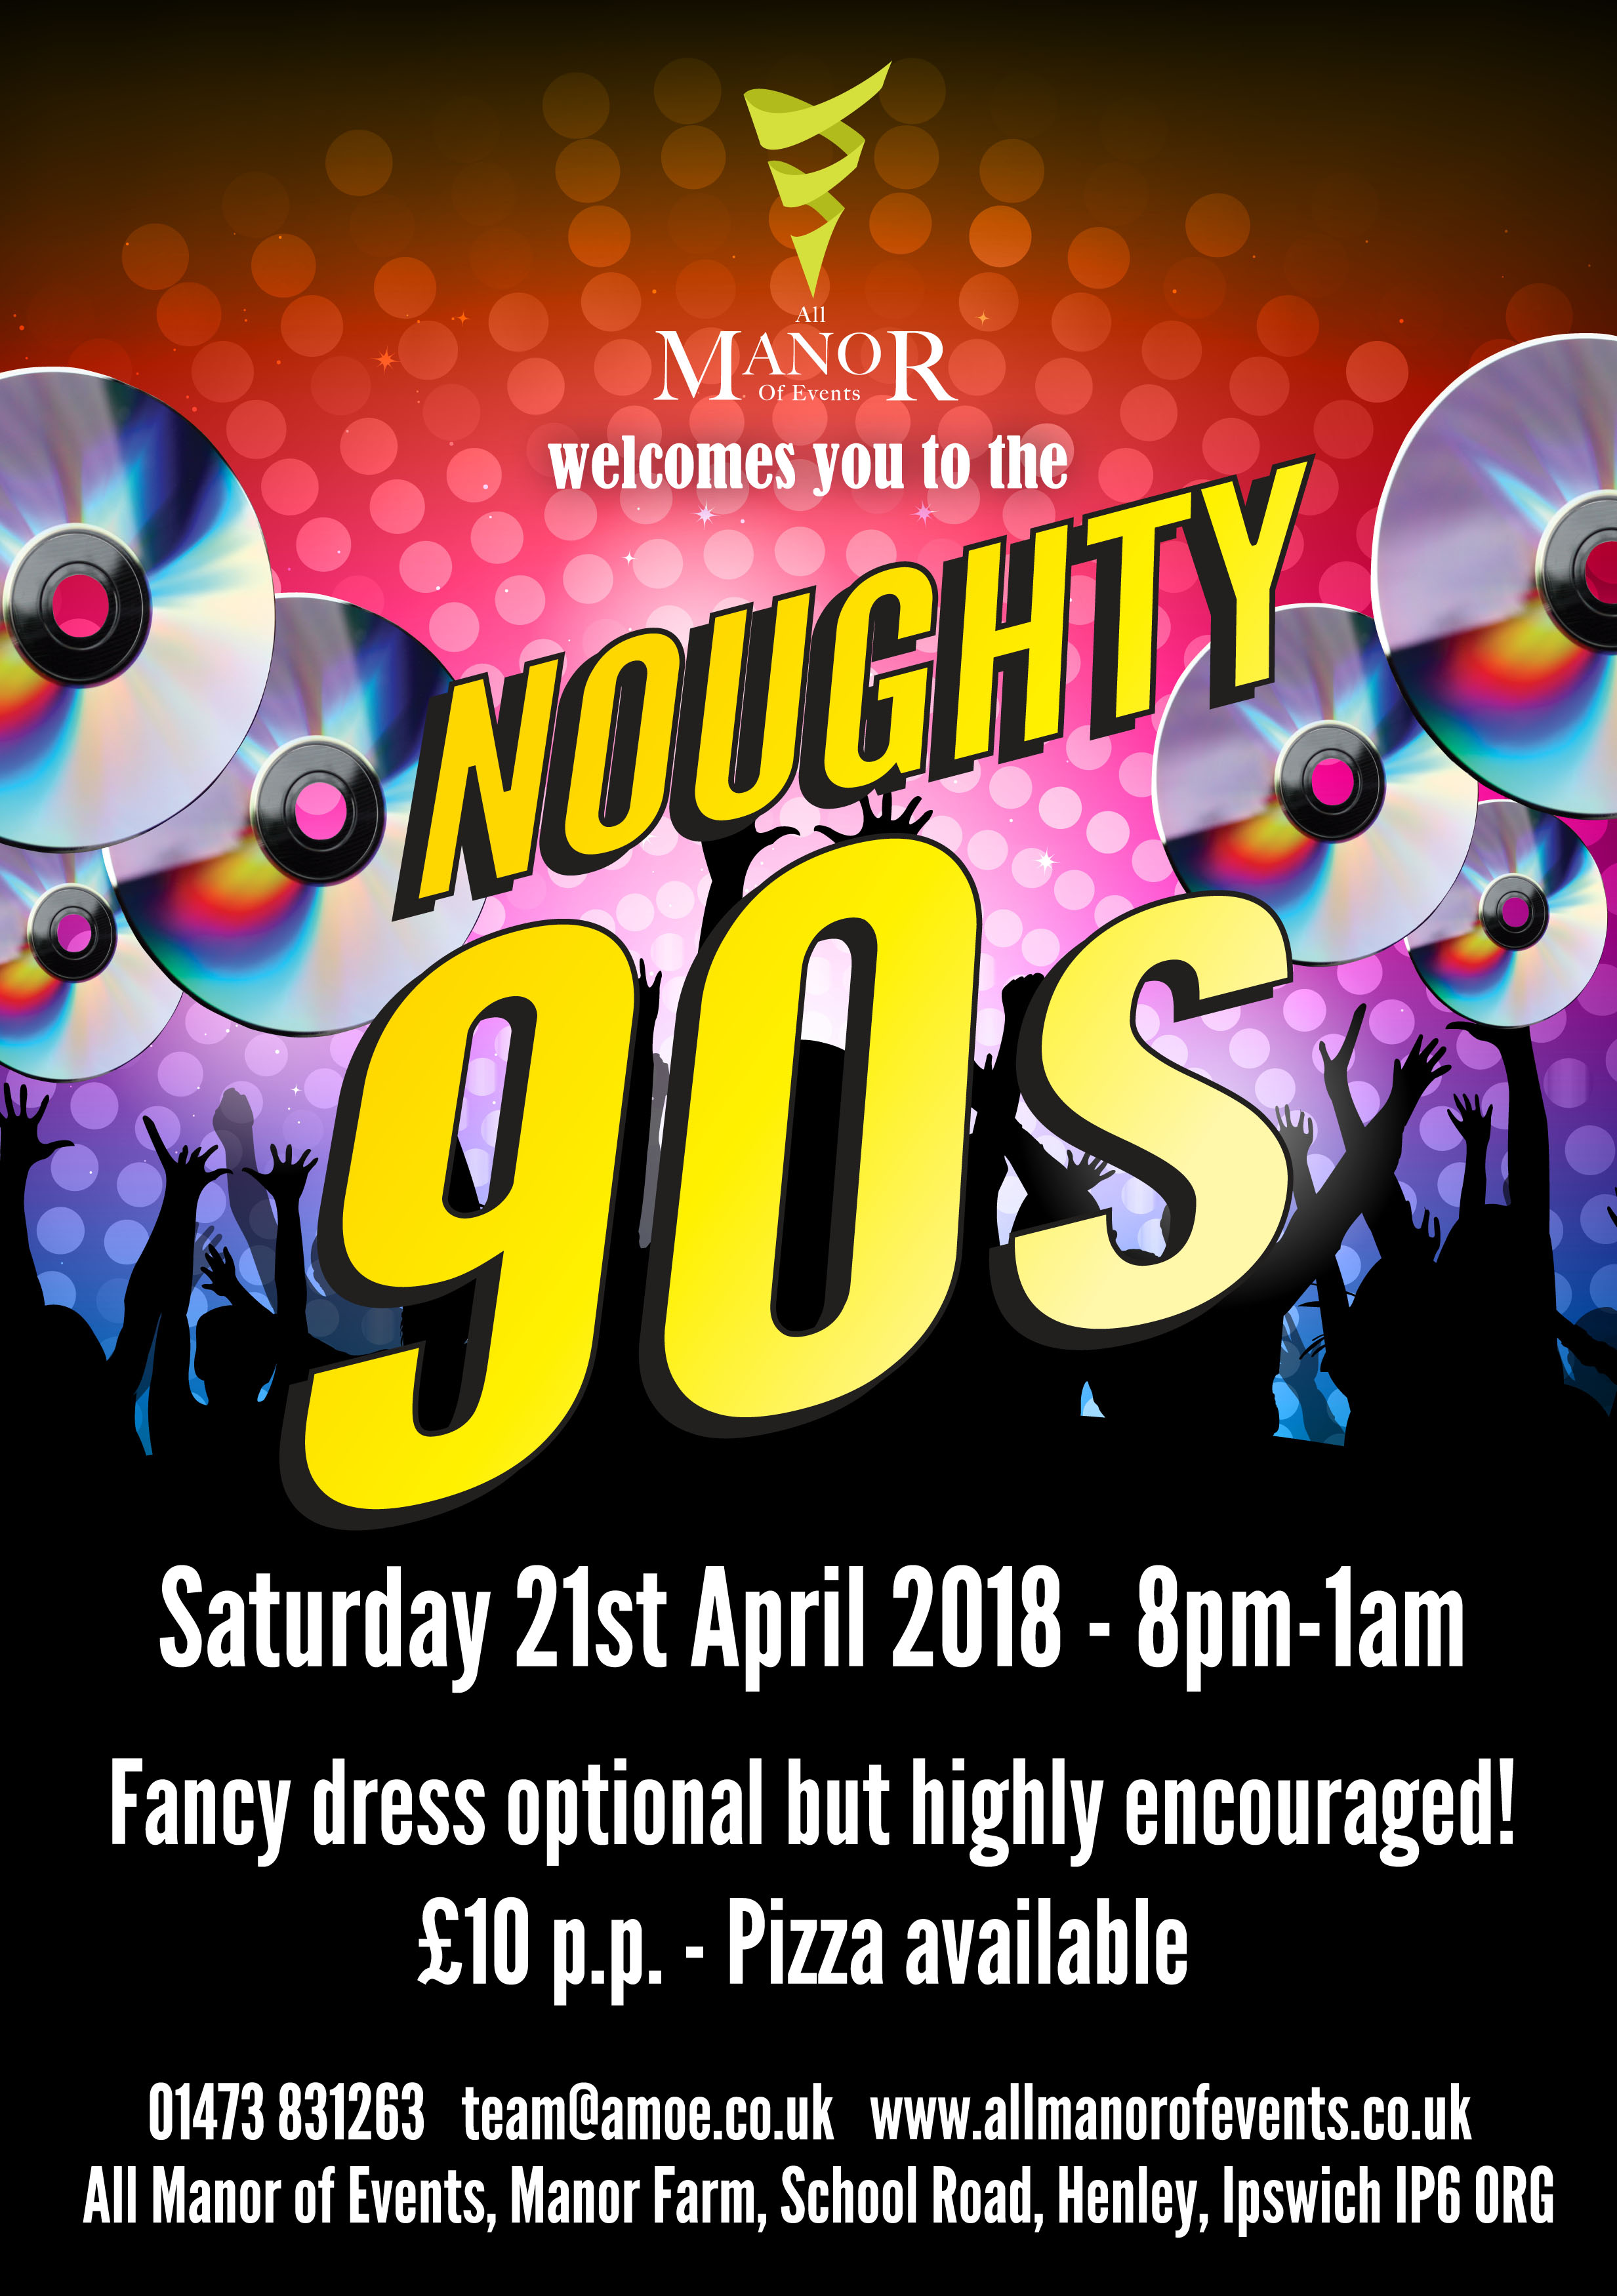 Noughty 90s flyer